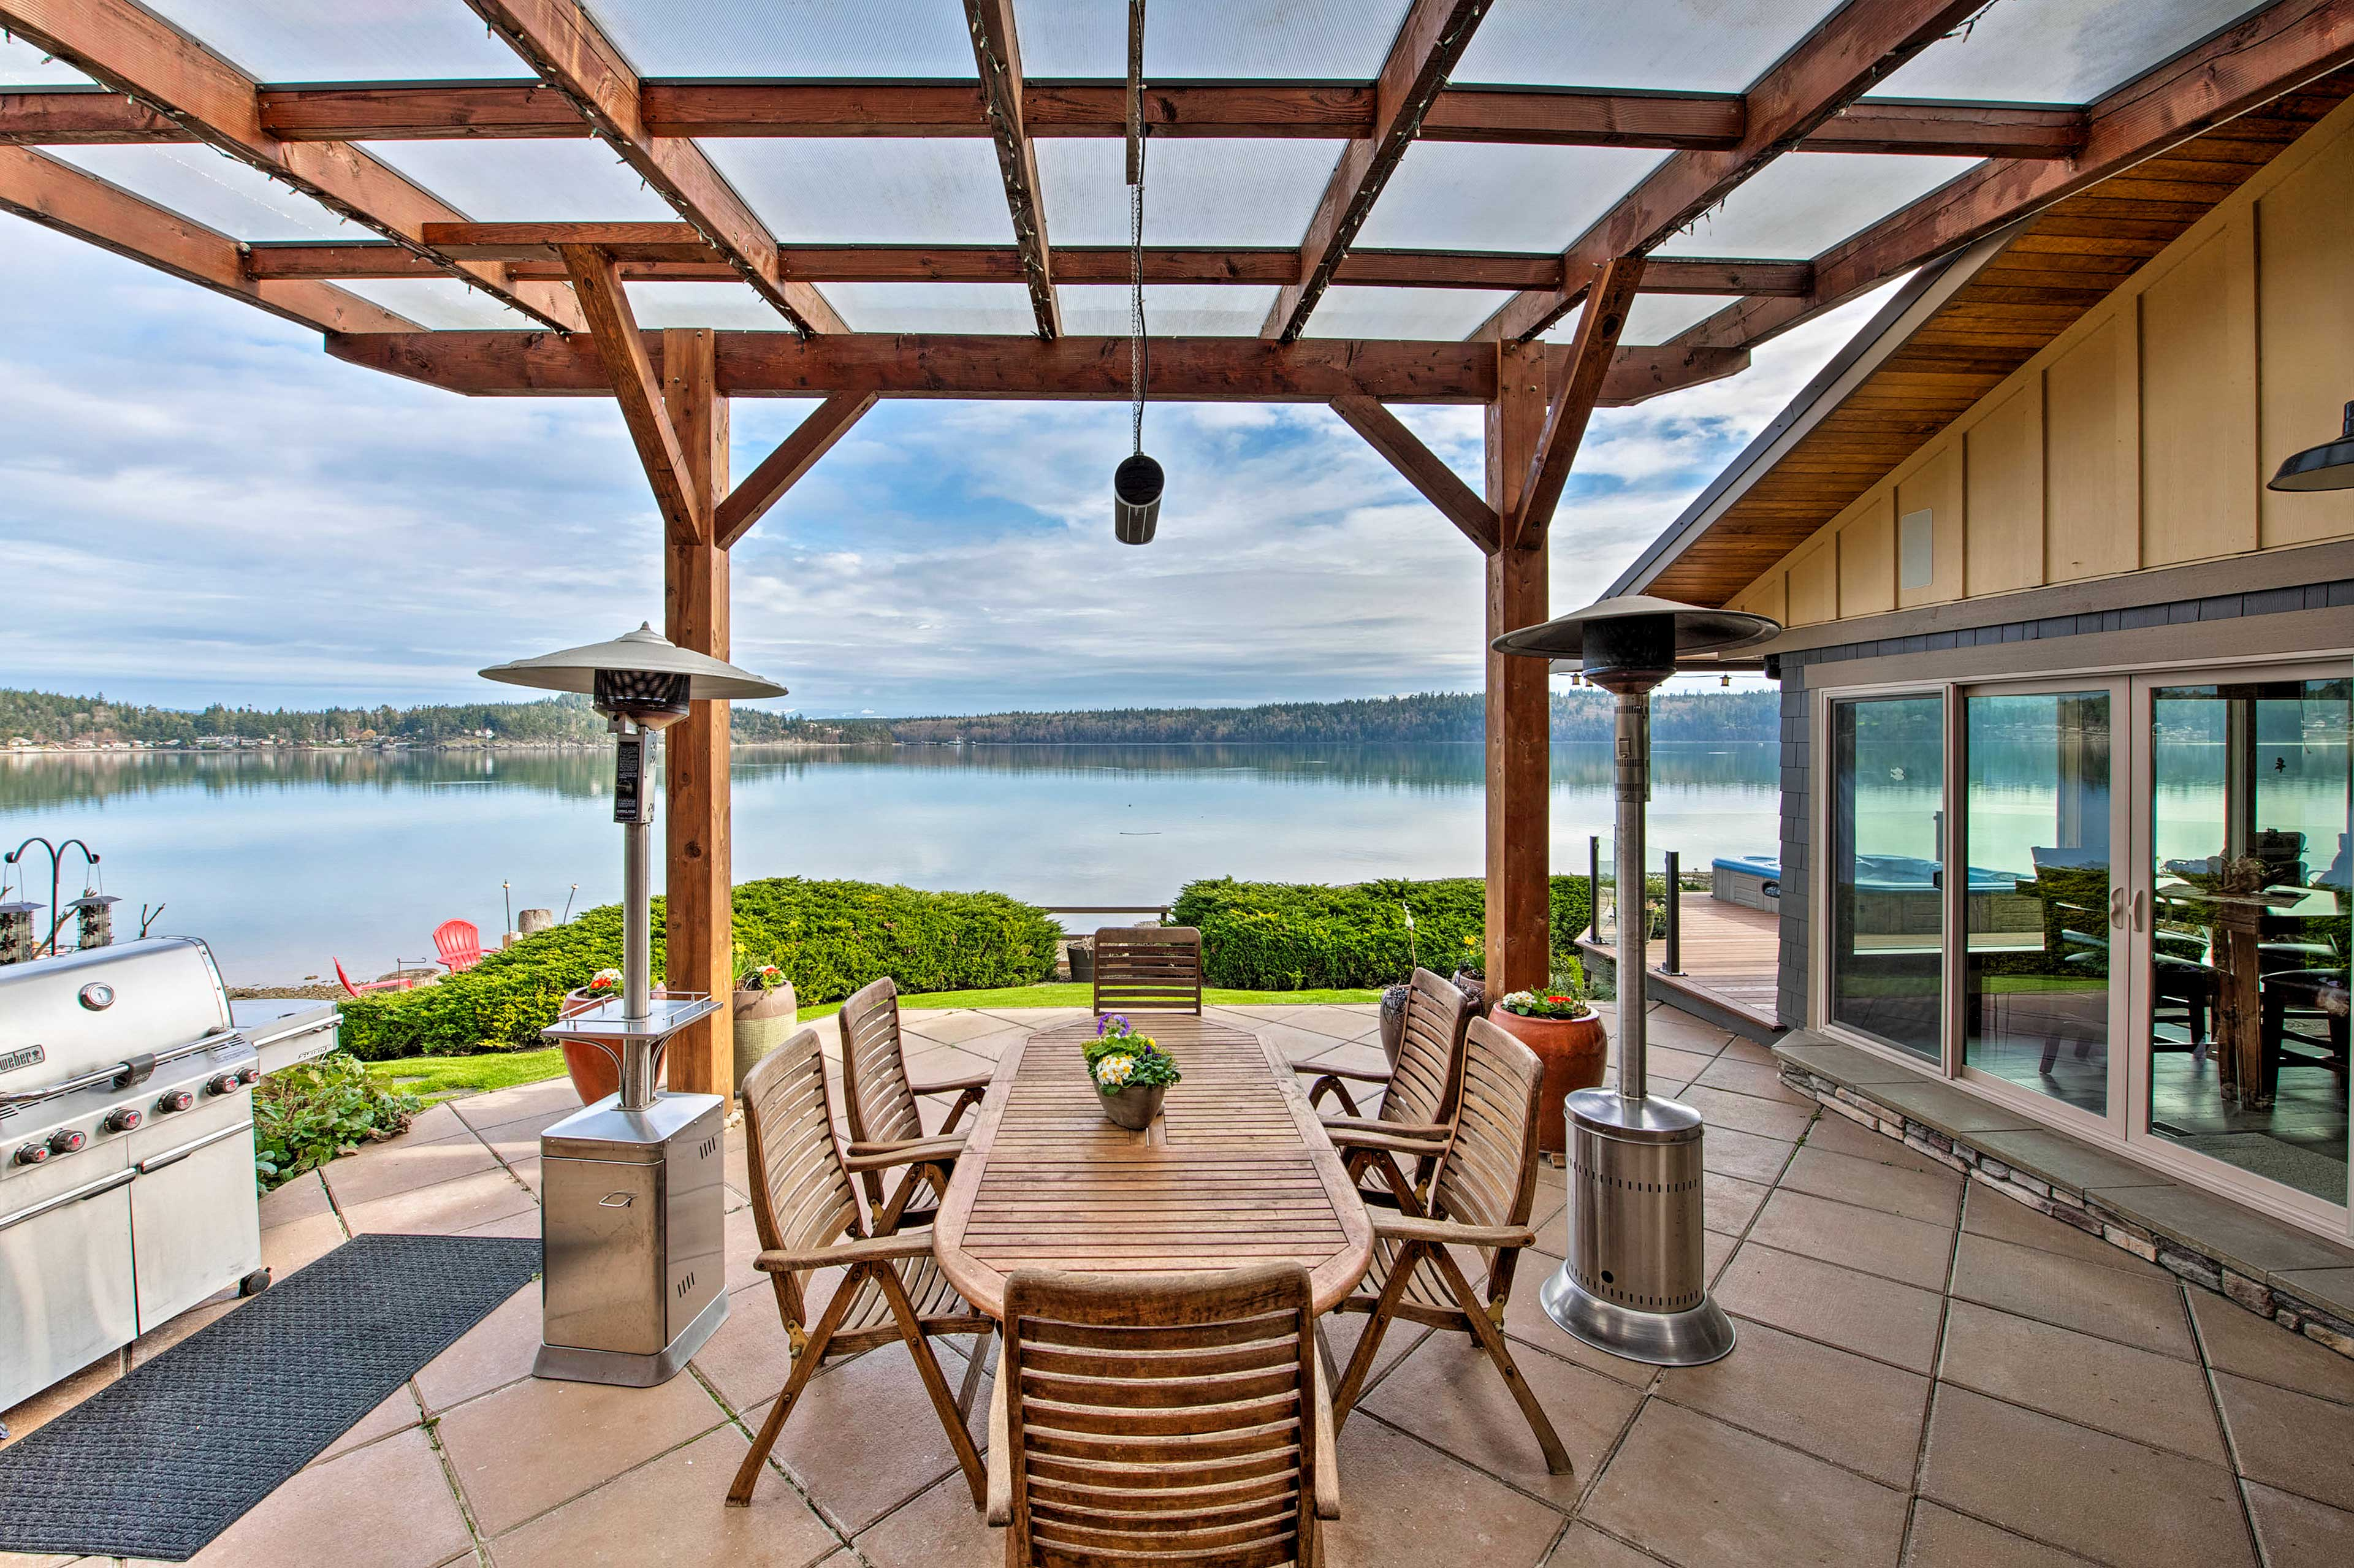 Escape to this stunning compound nestled on the shores of scenic Similk Bay!